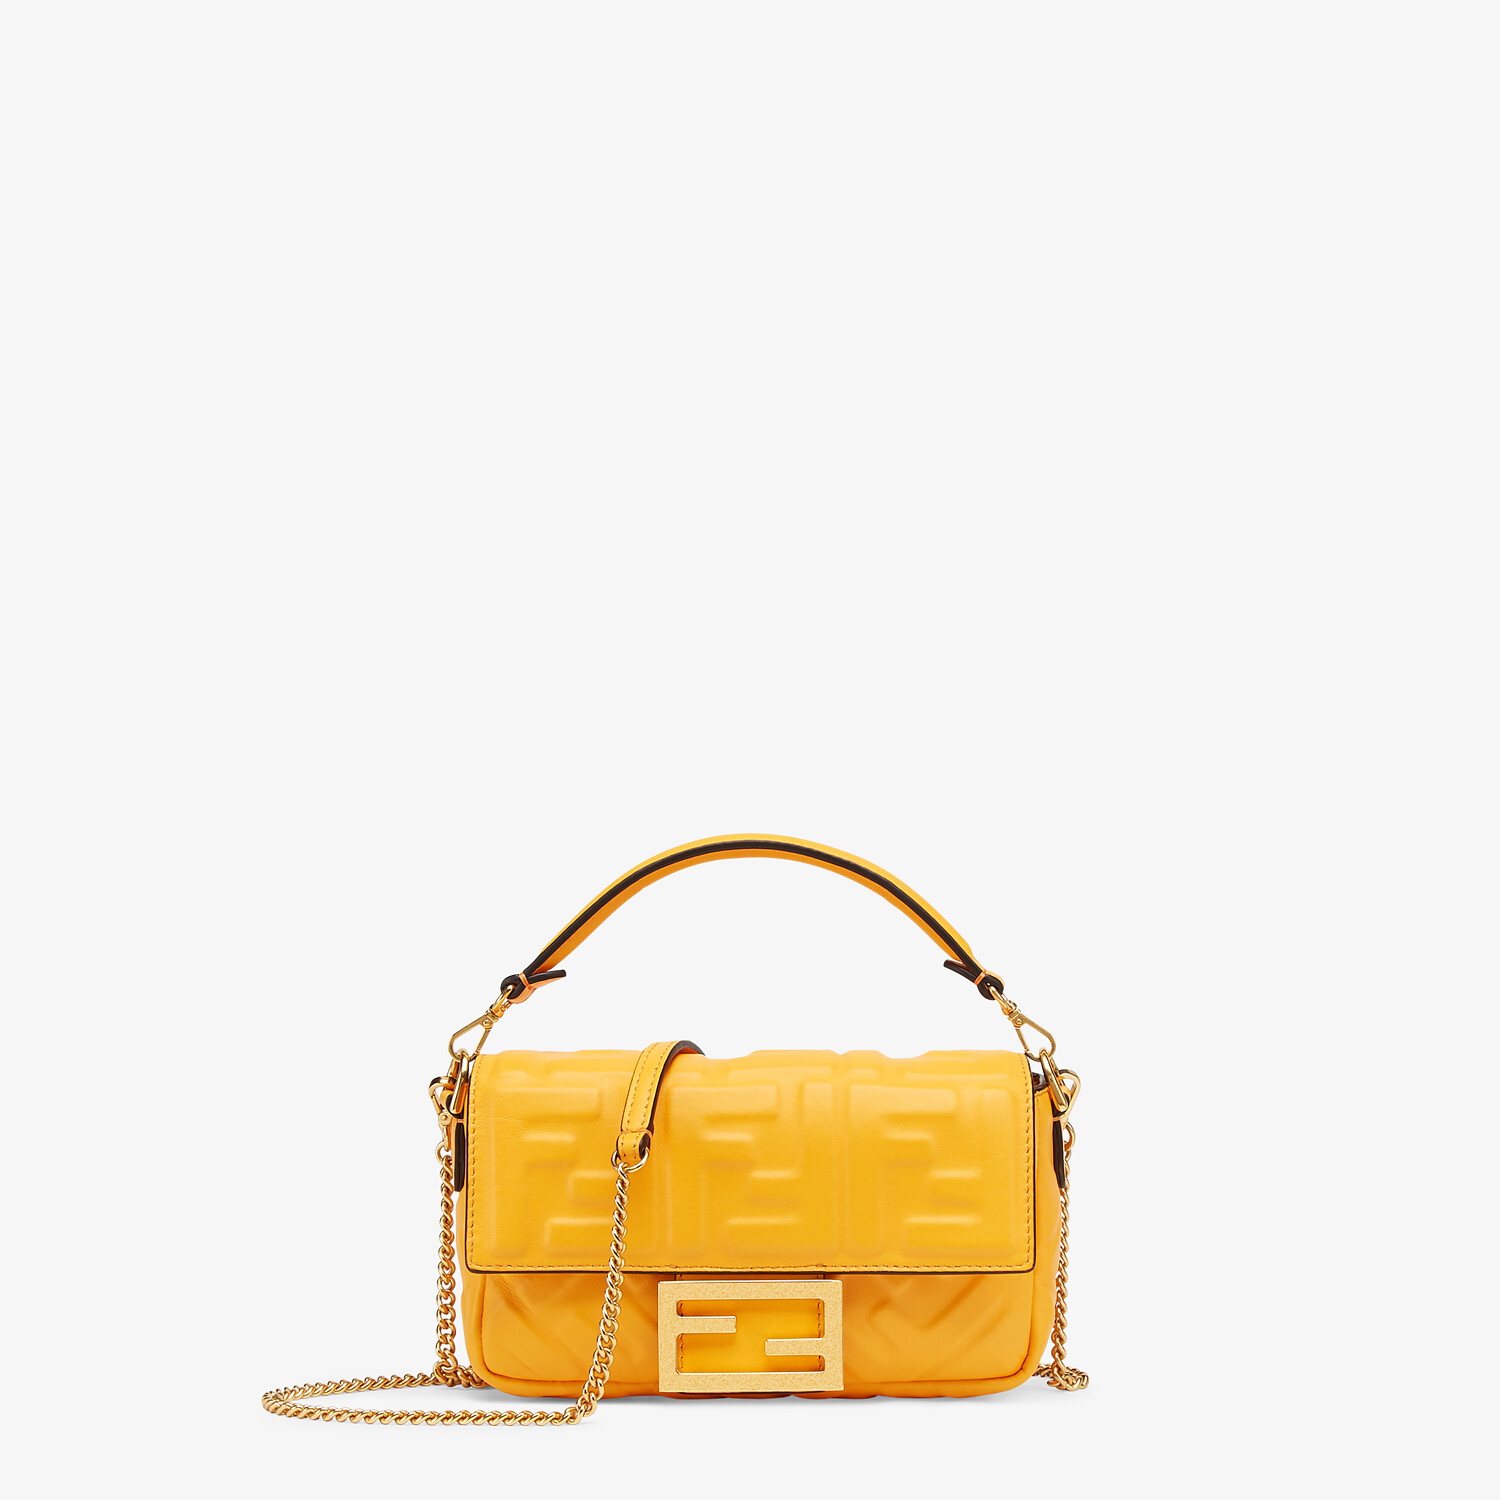 FENDI BAGUETTE - Orange nappa leather bag featuring the FF motif - view 1 detail